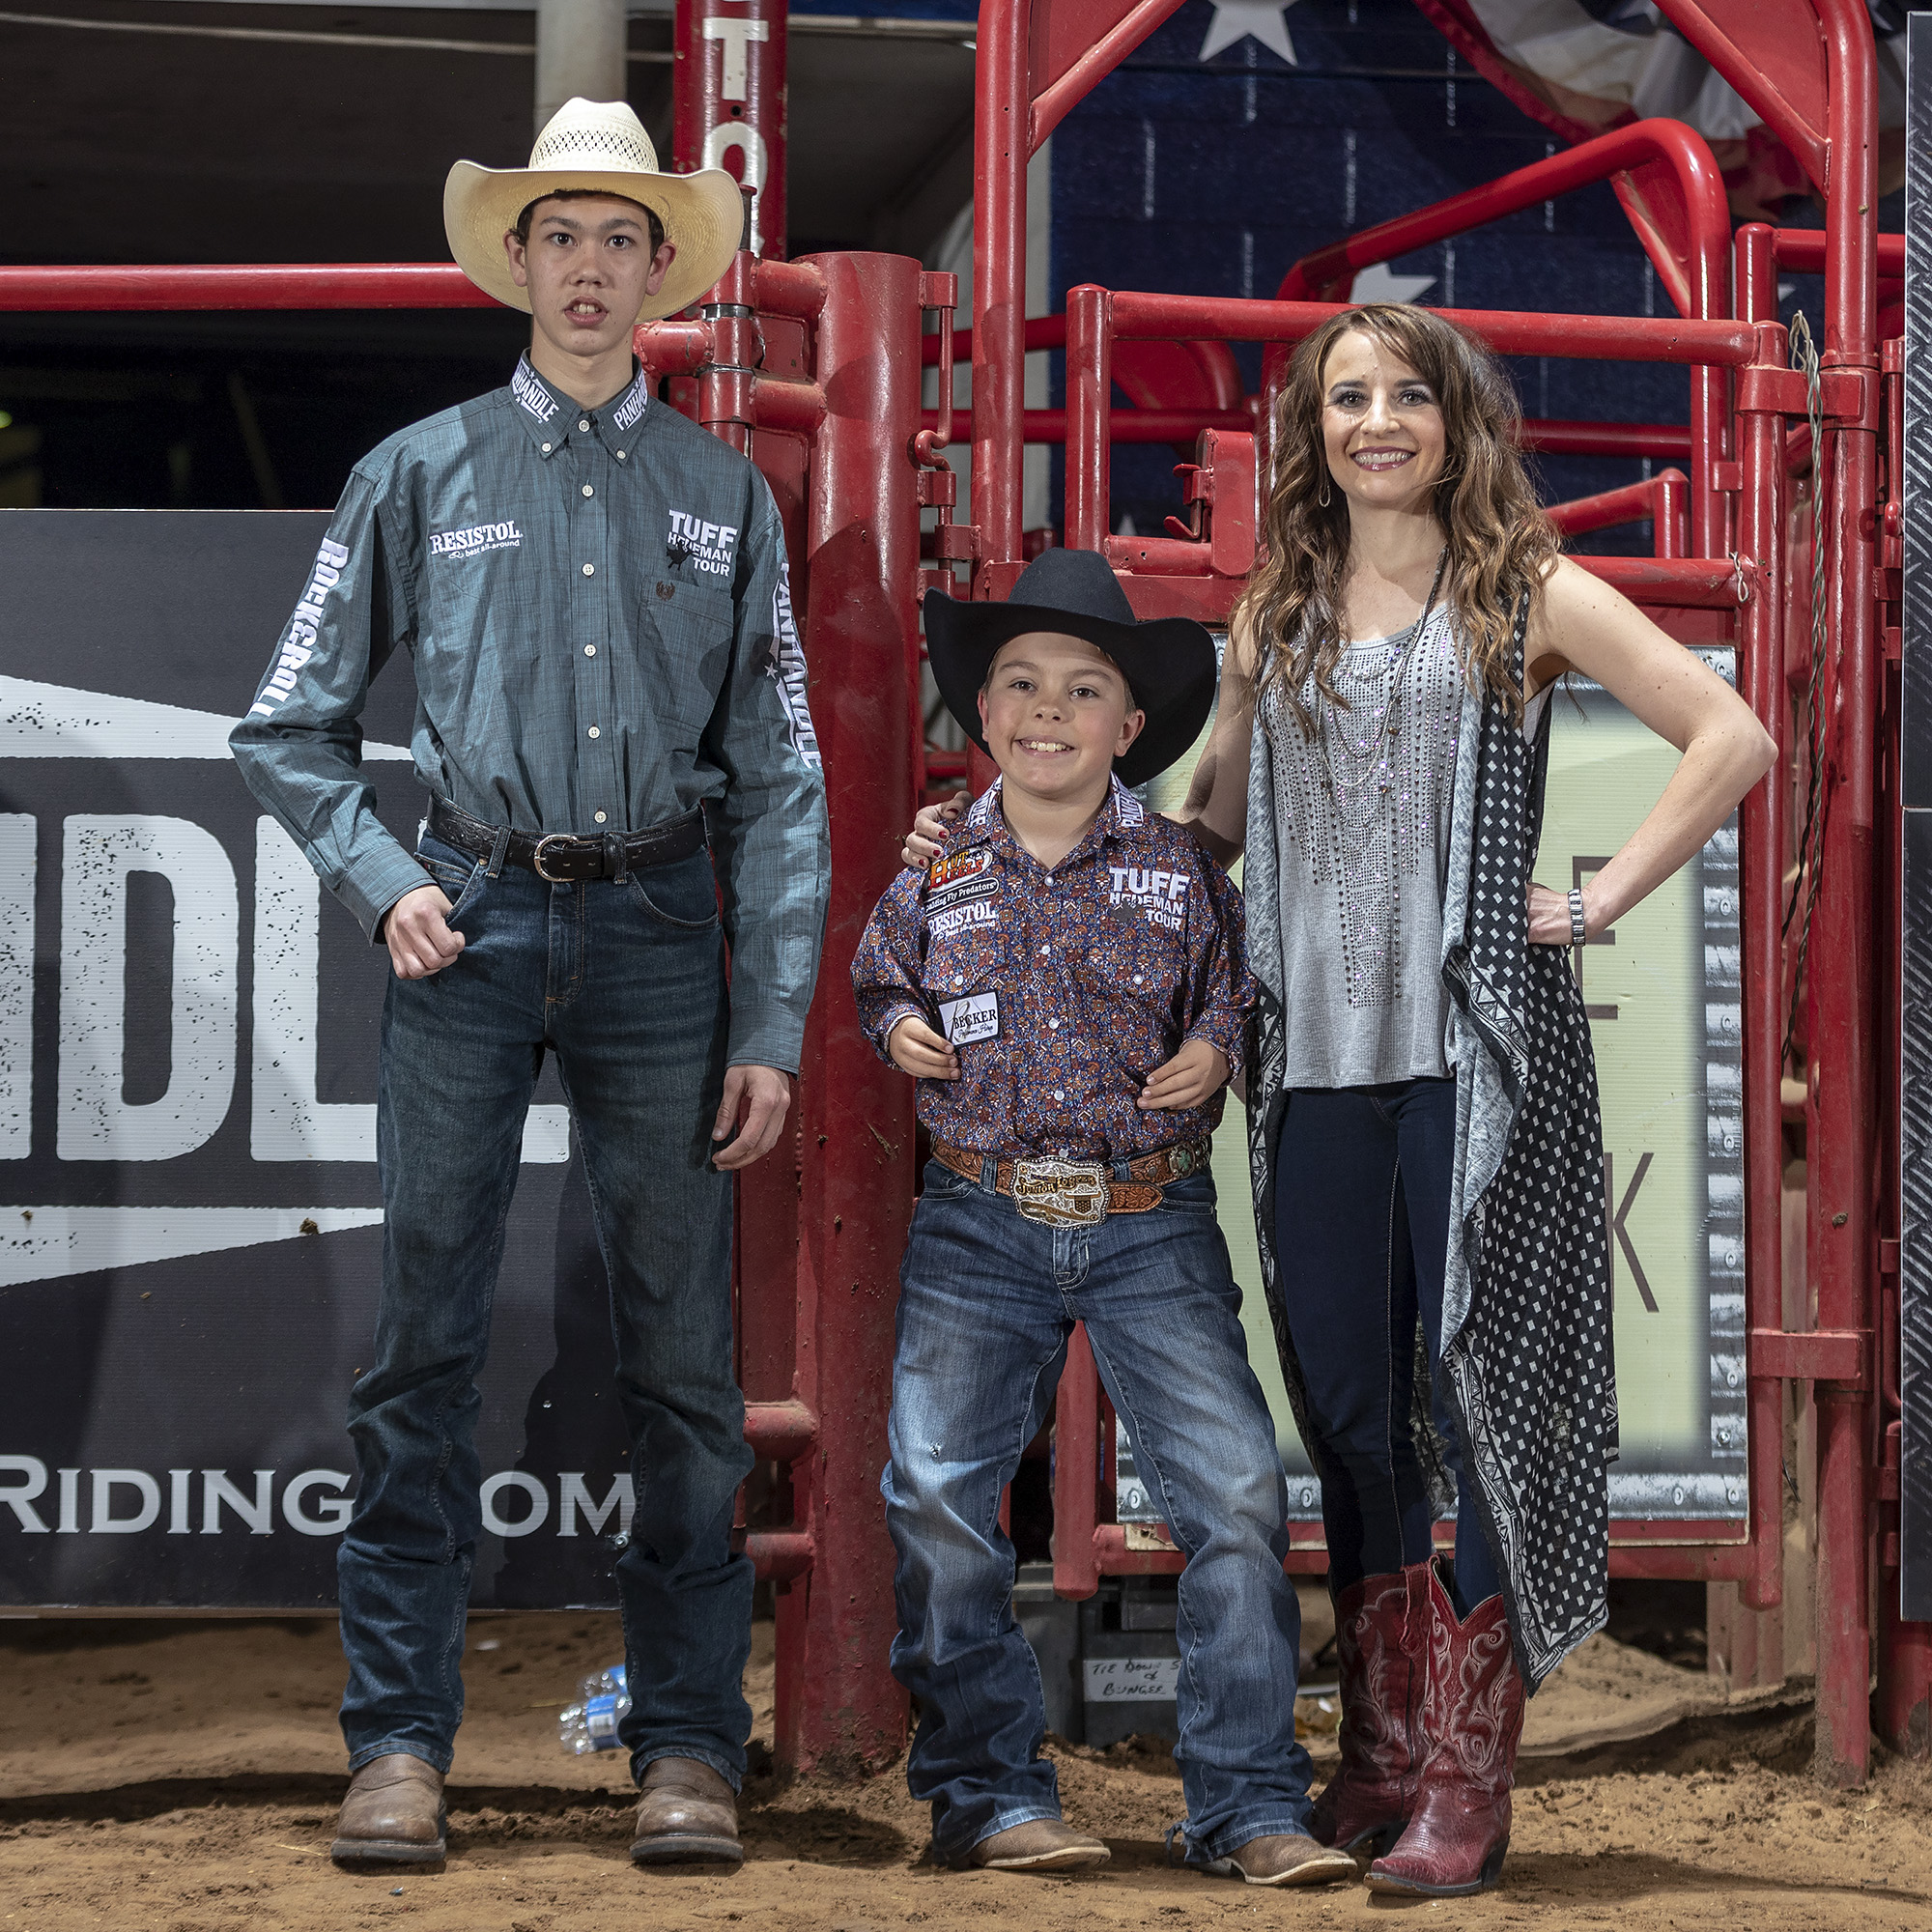 """This will be the 3rd collaboration between Western Wishes and Tuff Hedeman Bull Riding this year. I've always heard such great things about this event and Red Wilk and Tuff Hedeman are going to provide a fantastic opportunity for Kyle that he will always remember. I am really looking forward to representing Western Wishes and hosting Kyle and his family in South Dakota."" - Mandy Shaff, Ambassador for Western Wishes."